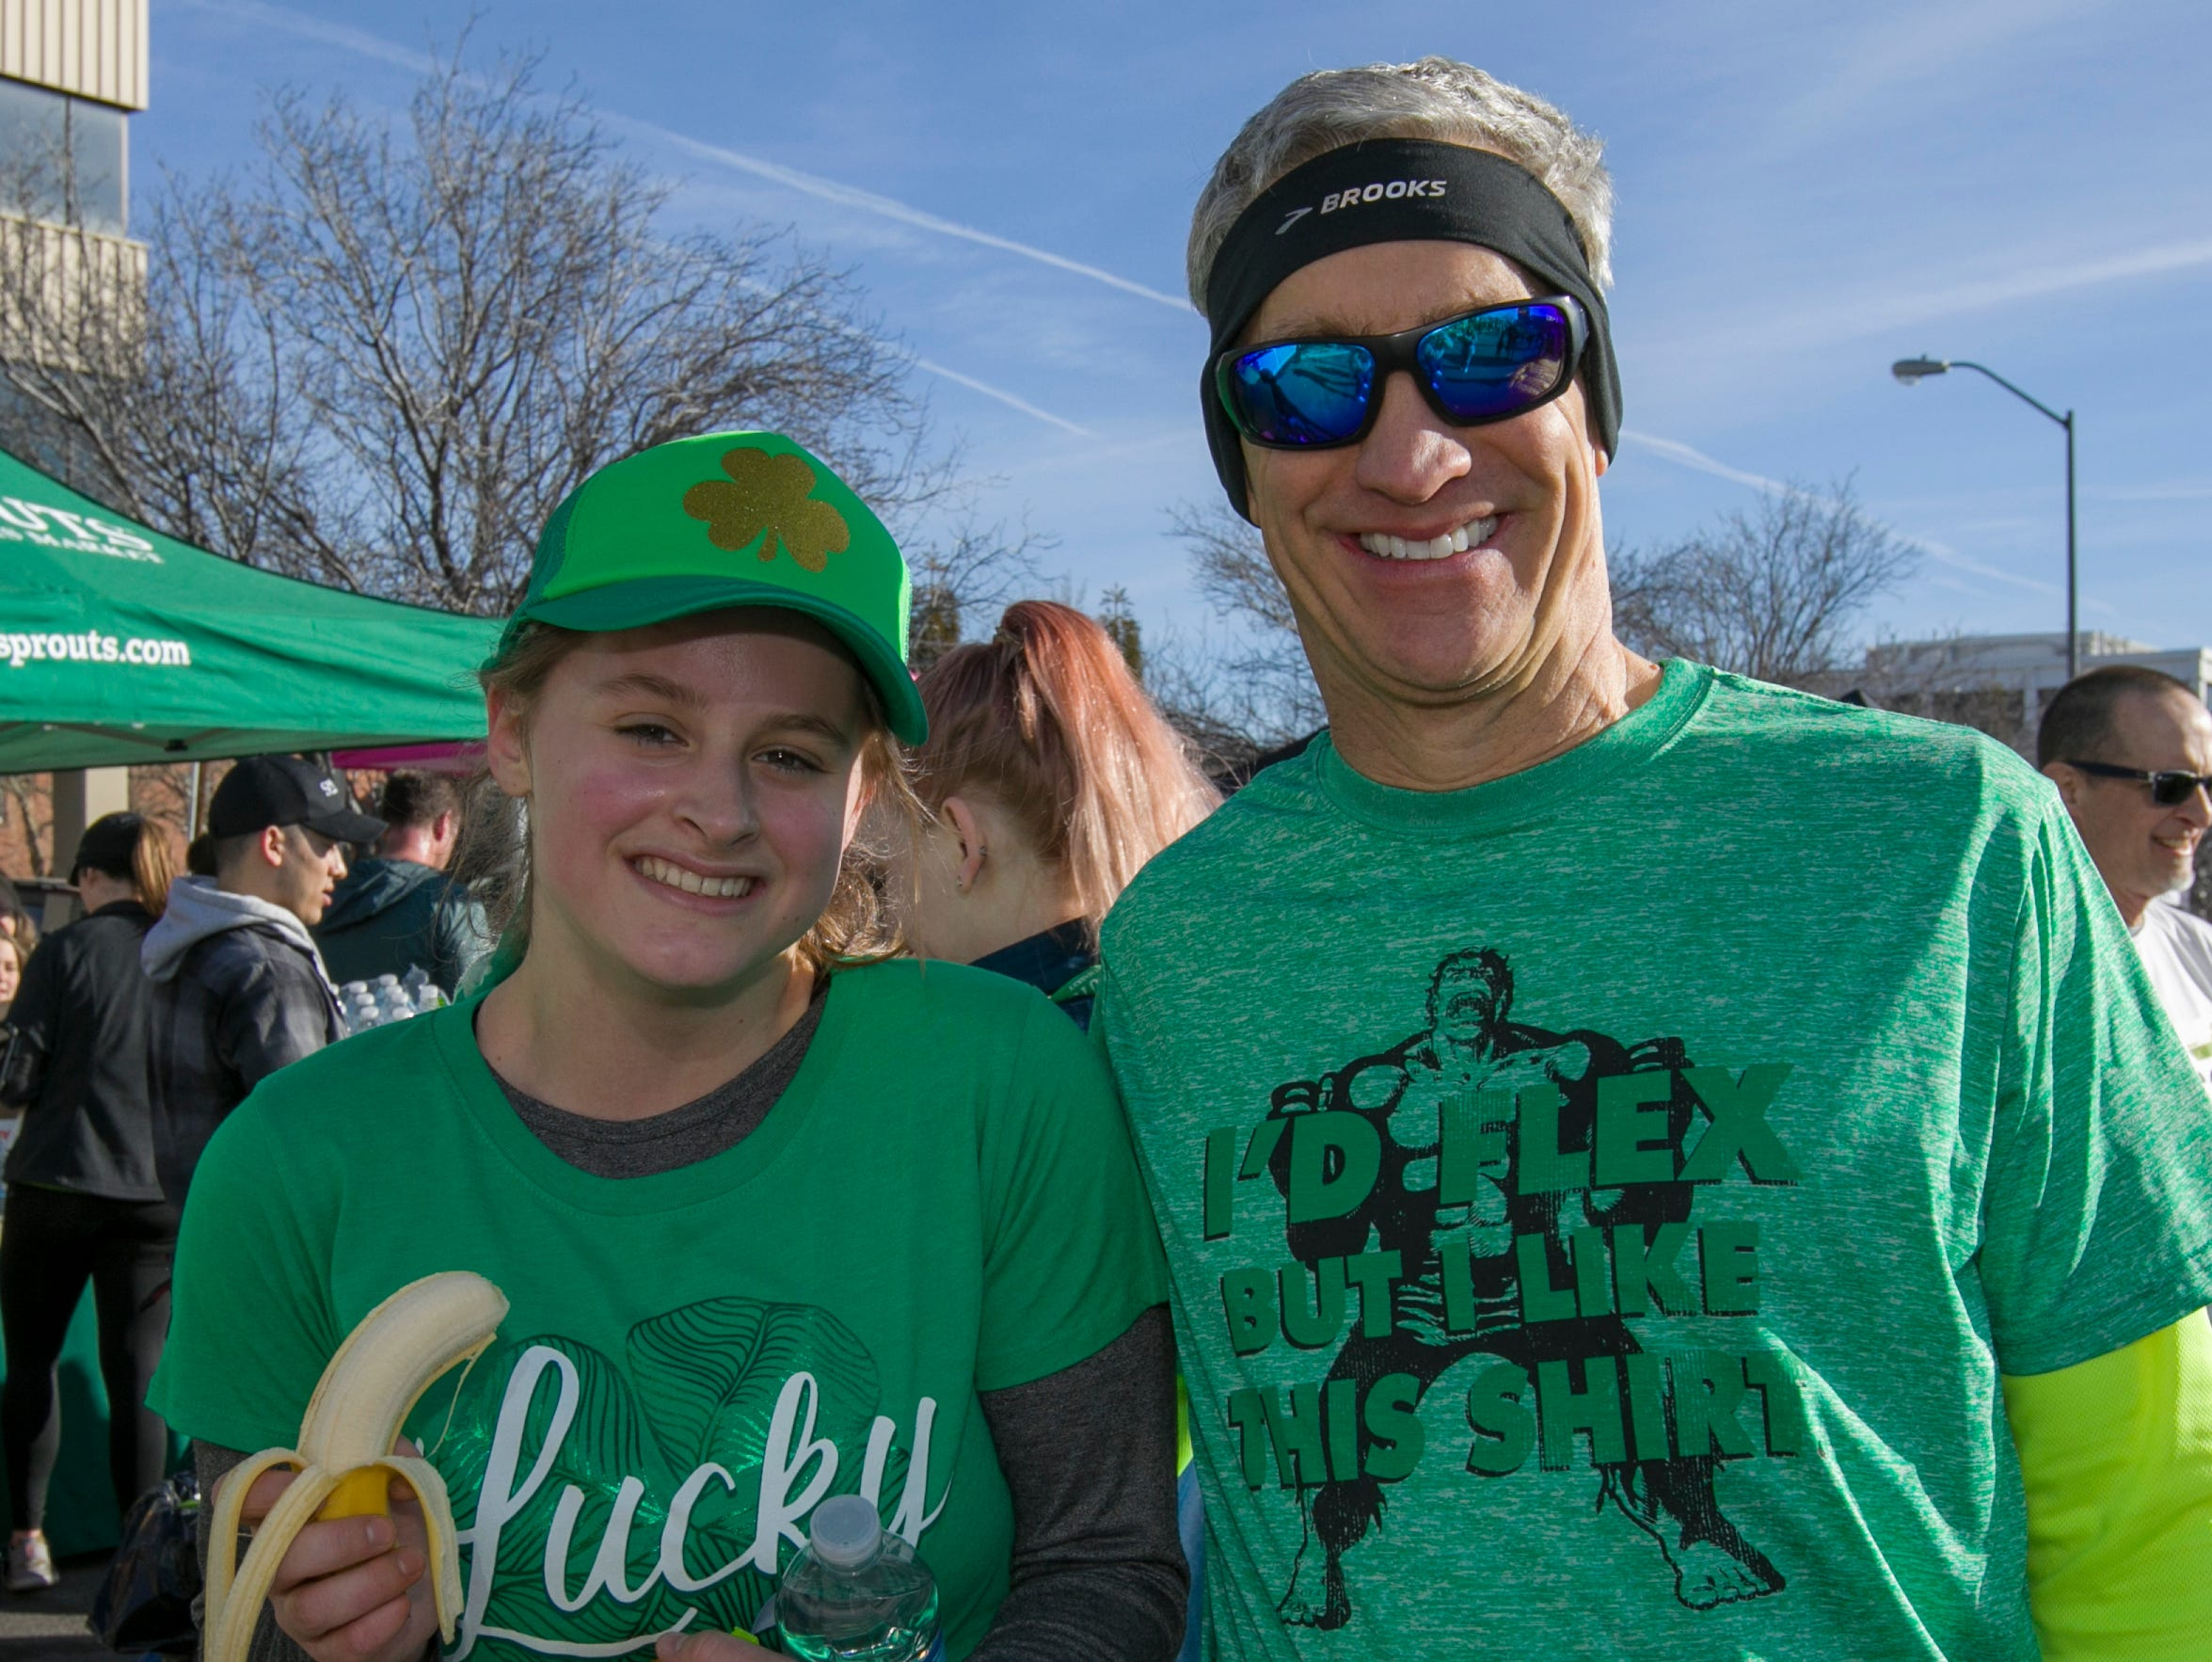 Delaney and William after the 7th annual Leprechaun Race in downtown Reno, Nevada on Sunday, March 17, 2019.